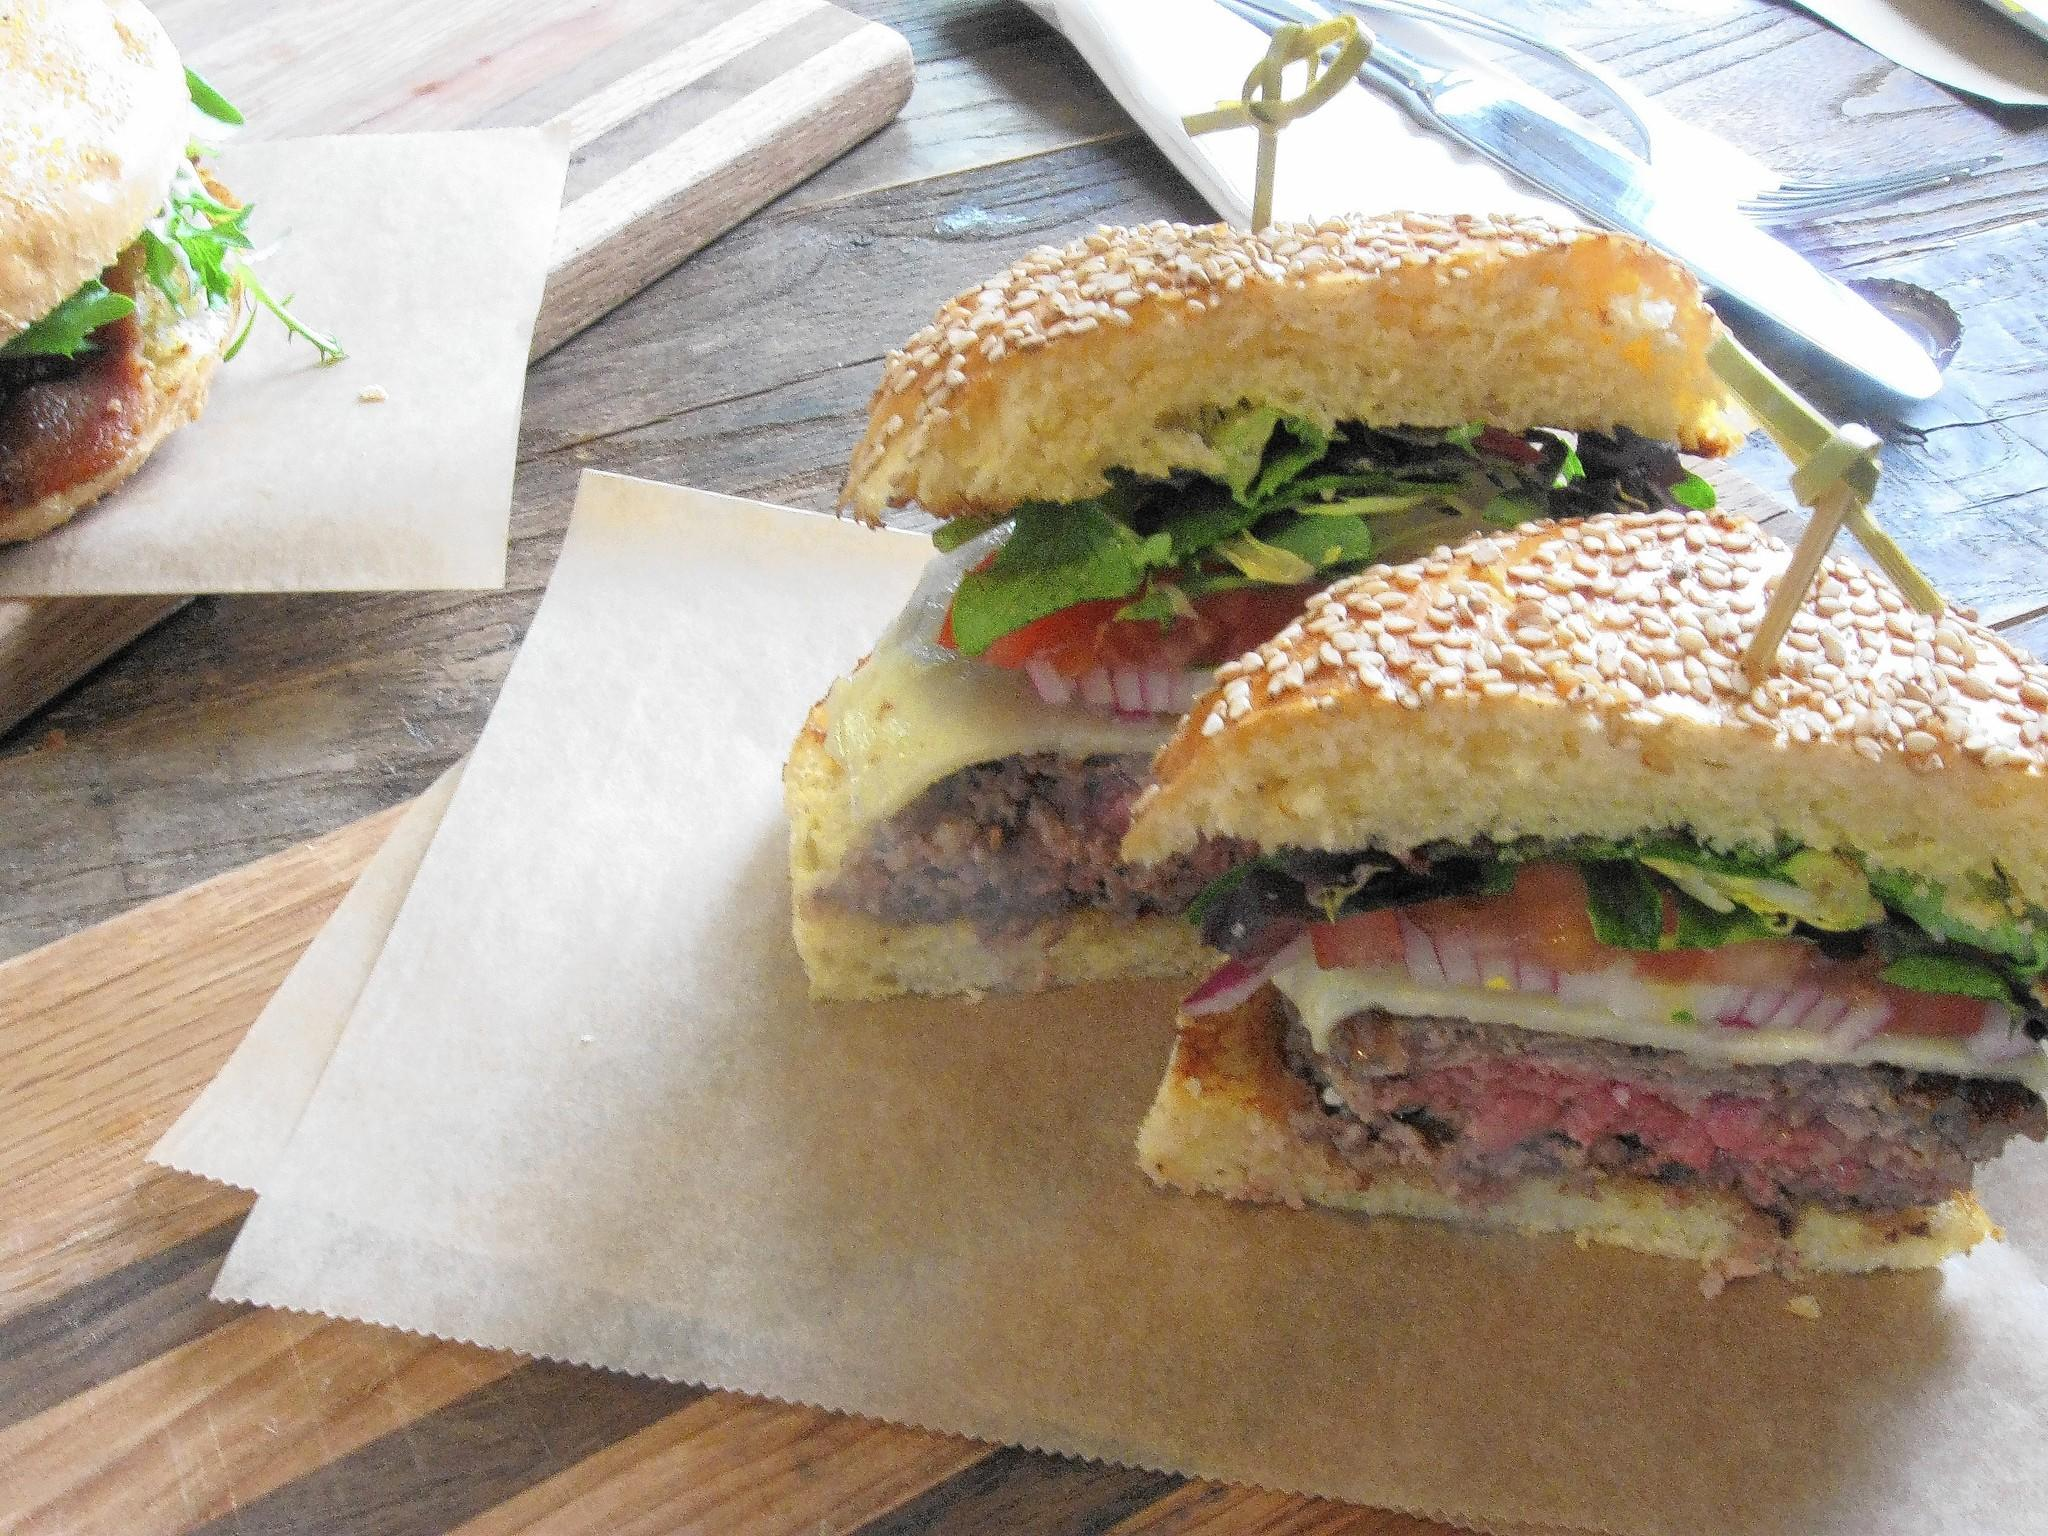 The Craft Classic is served with American or cheddar cheese, lettuce, tomato and onion.